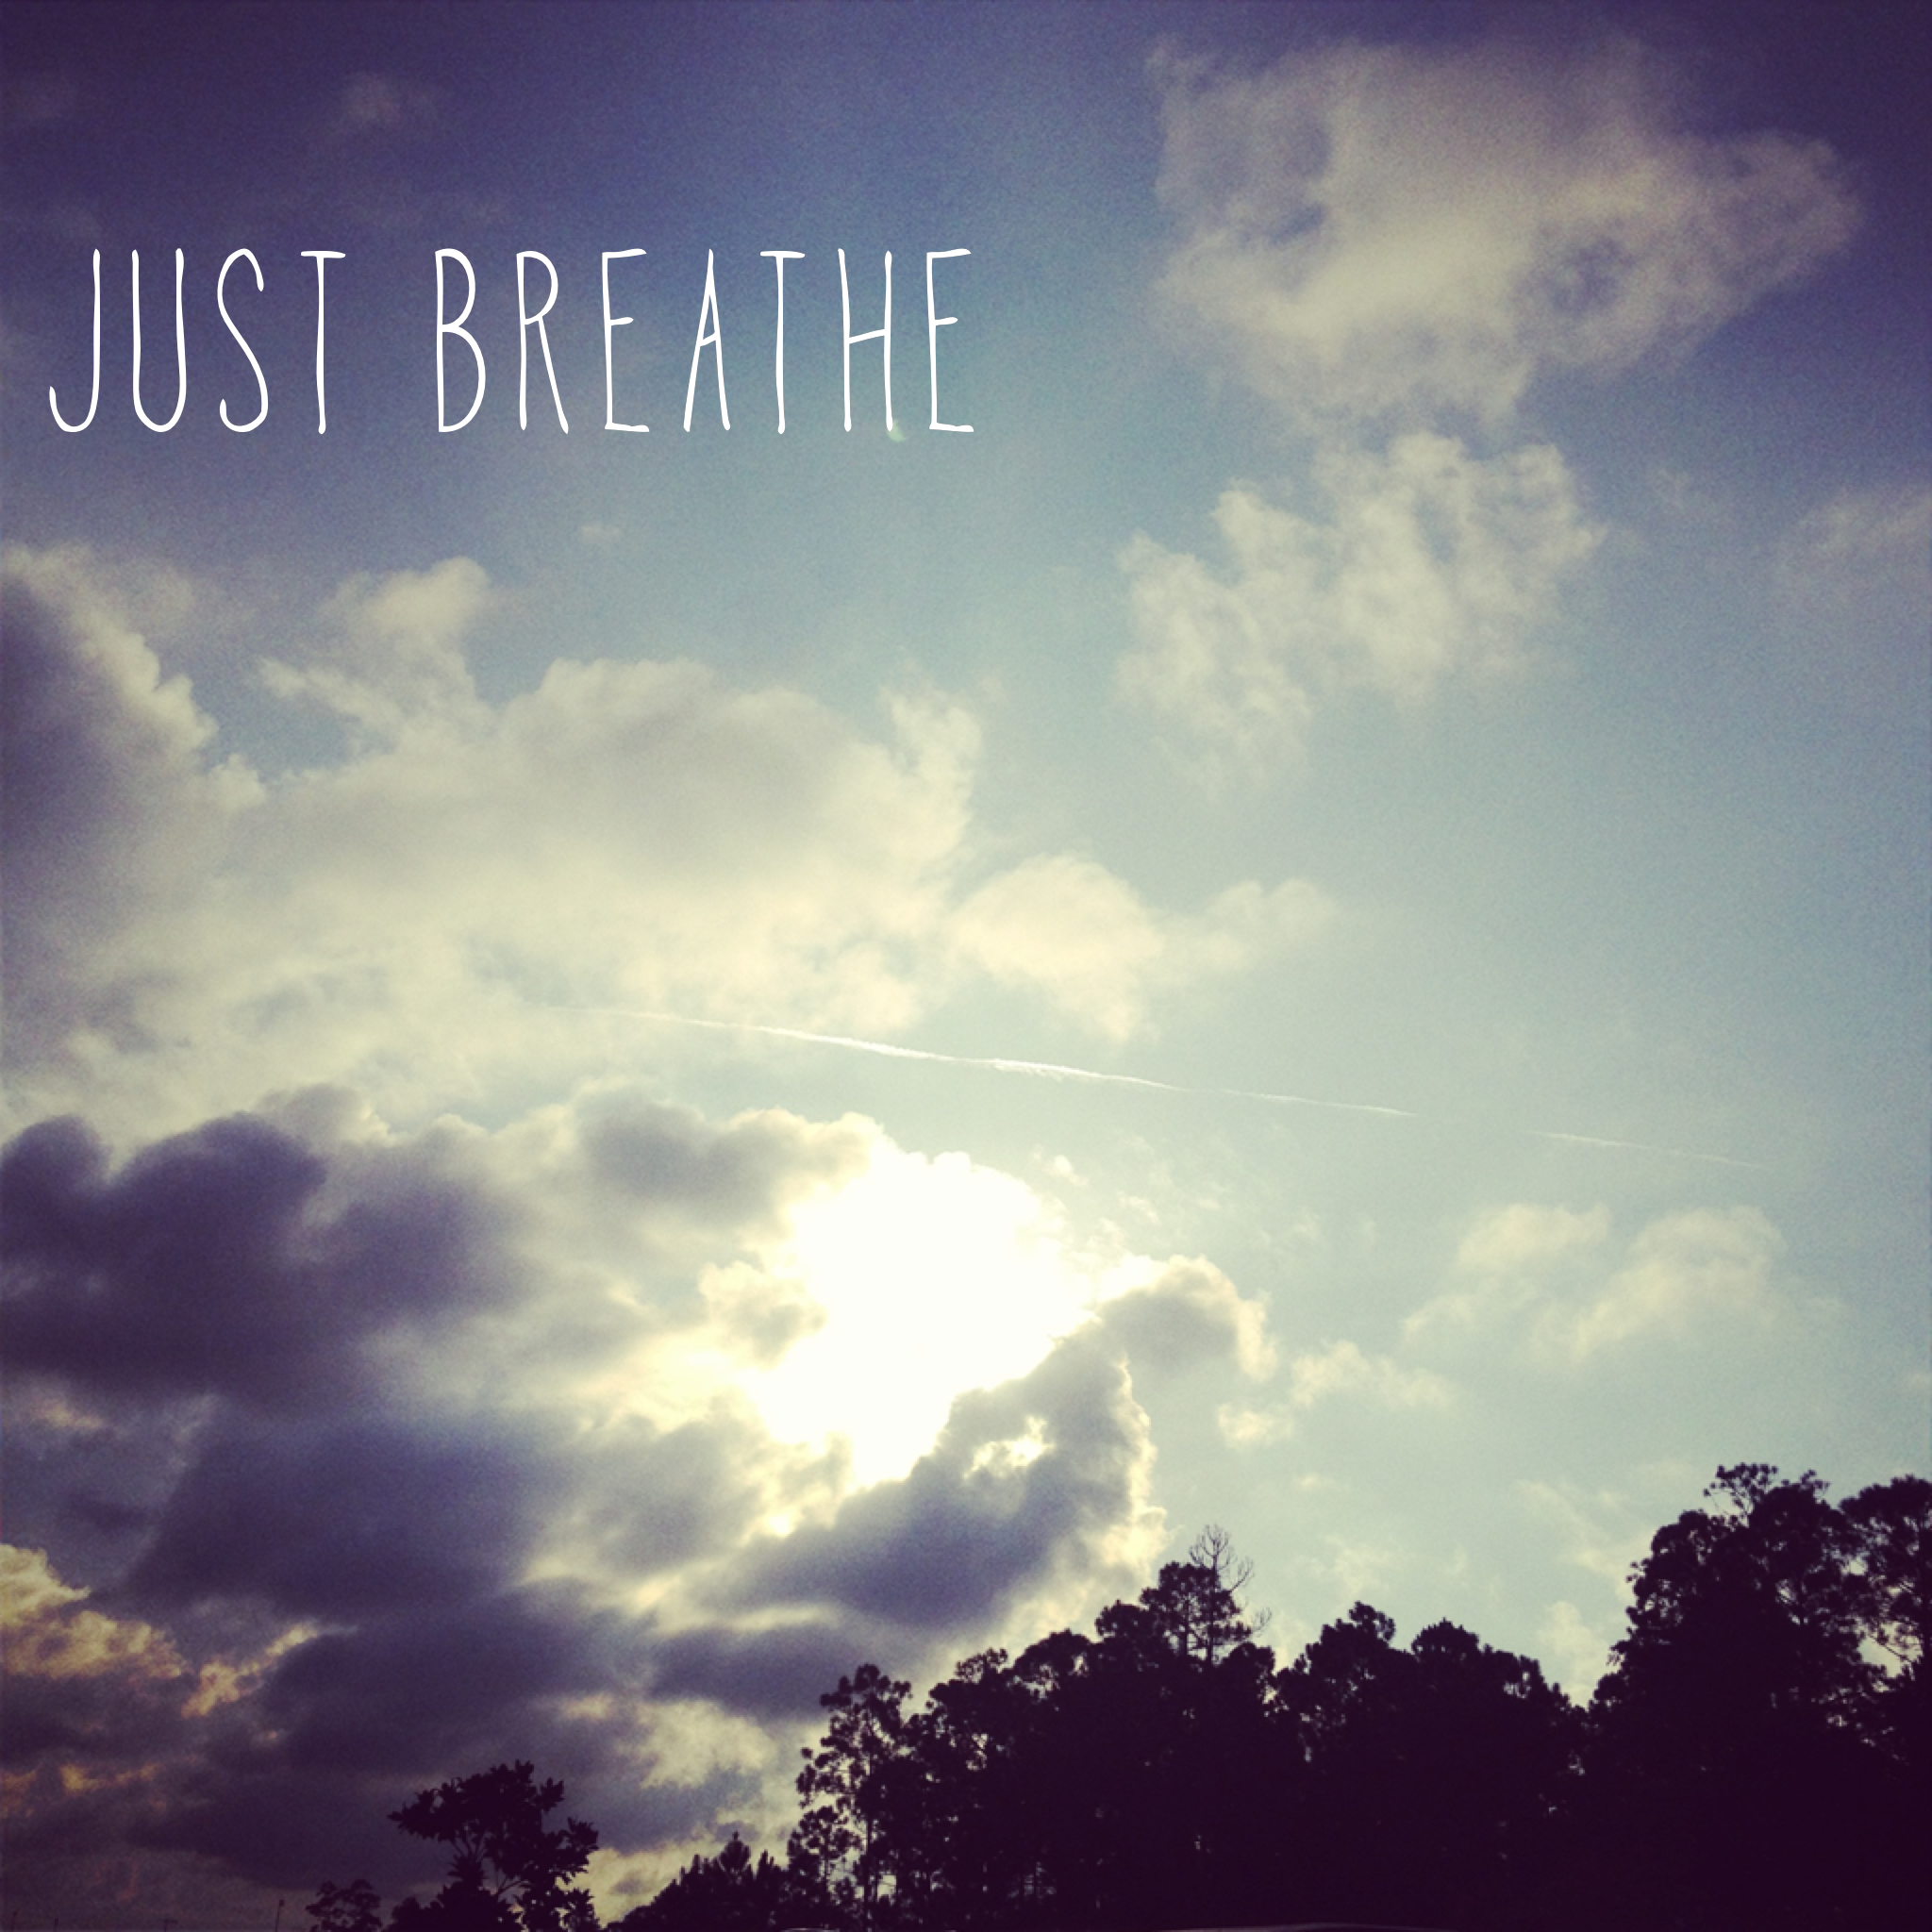 Just Breathe Quotes. QuotesGram